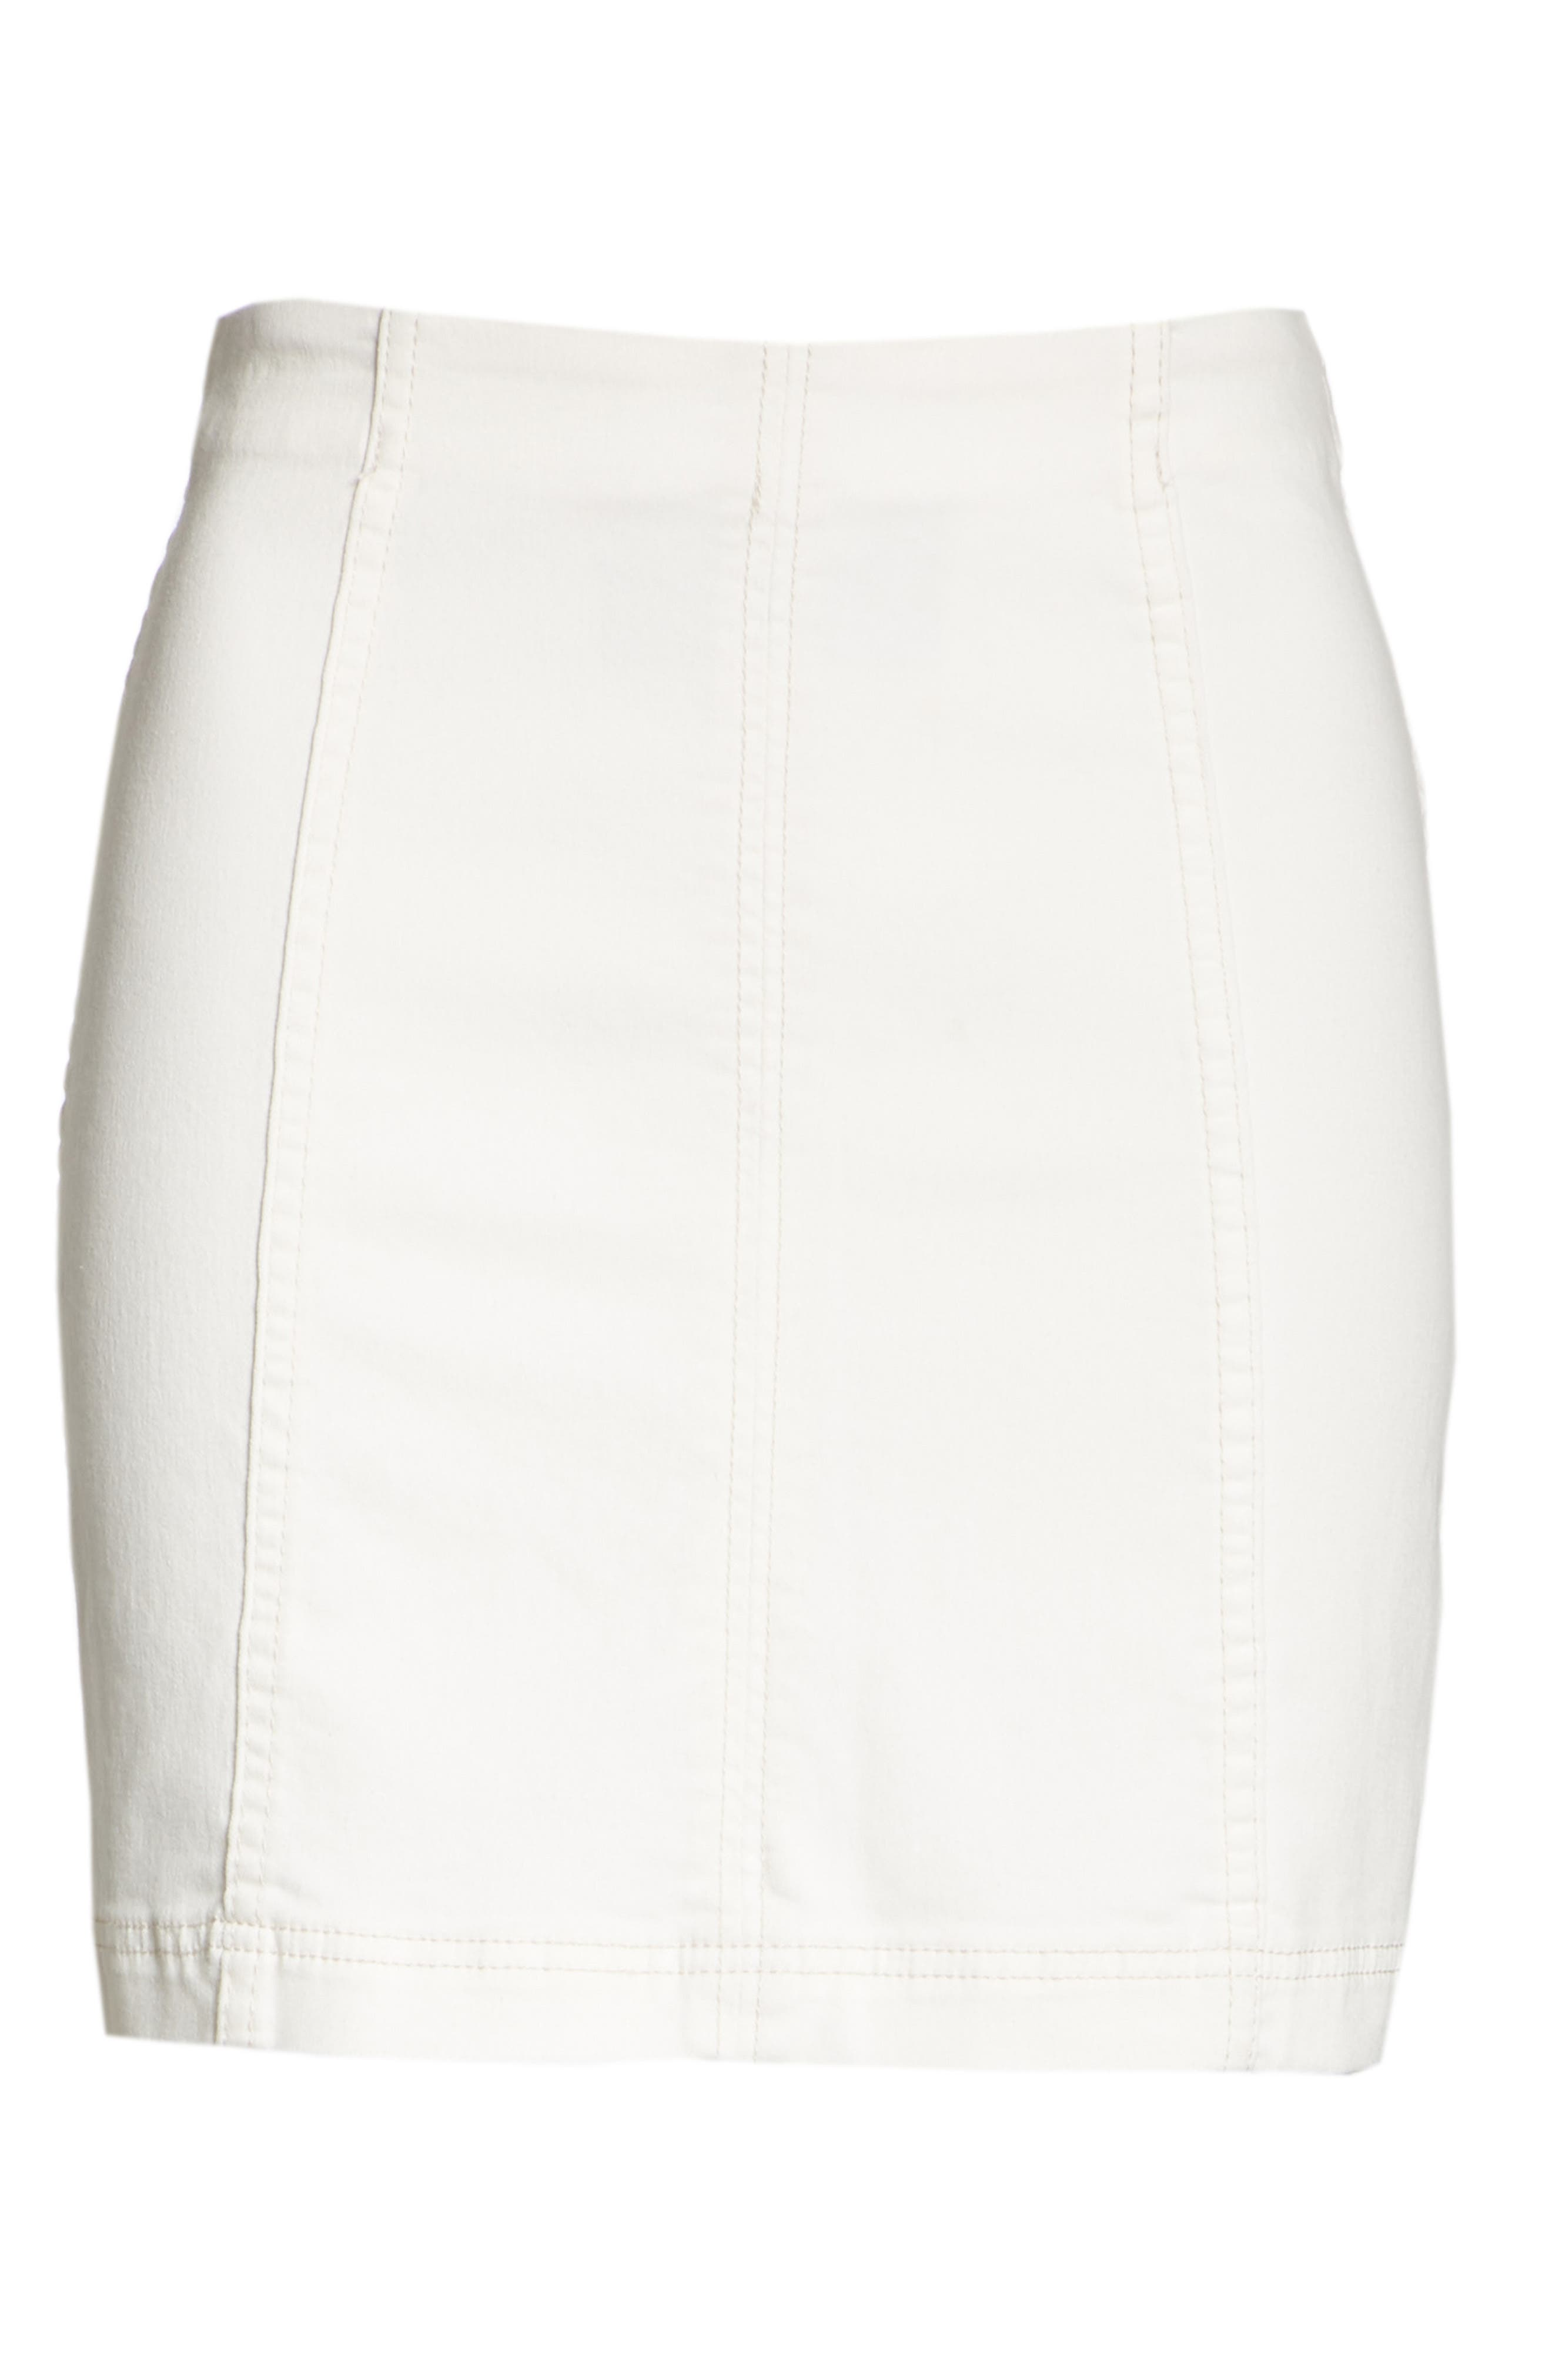 FREE PEOPLE, We the Free by Free People Modern Denim Skirt, Alternate thumbnail 7, color, 100